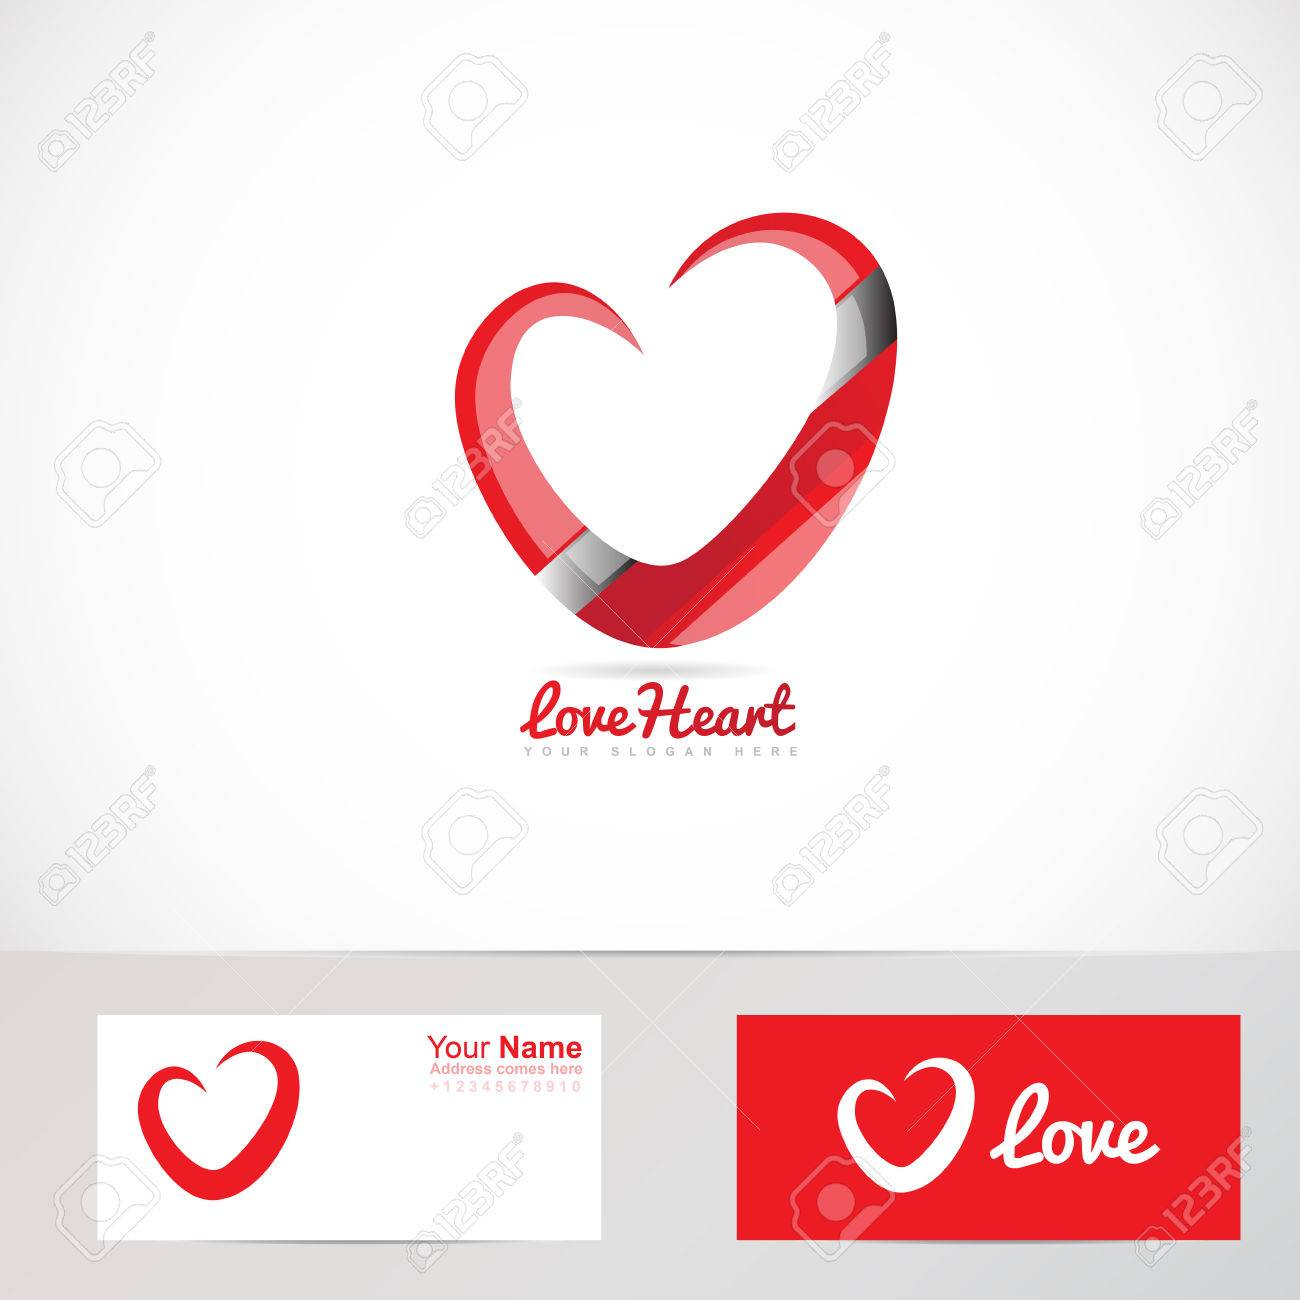 vector company logo element template of read love heart shape